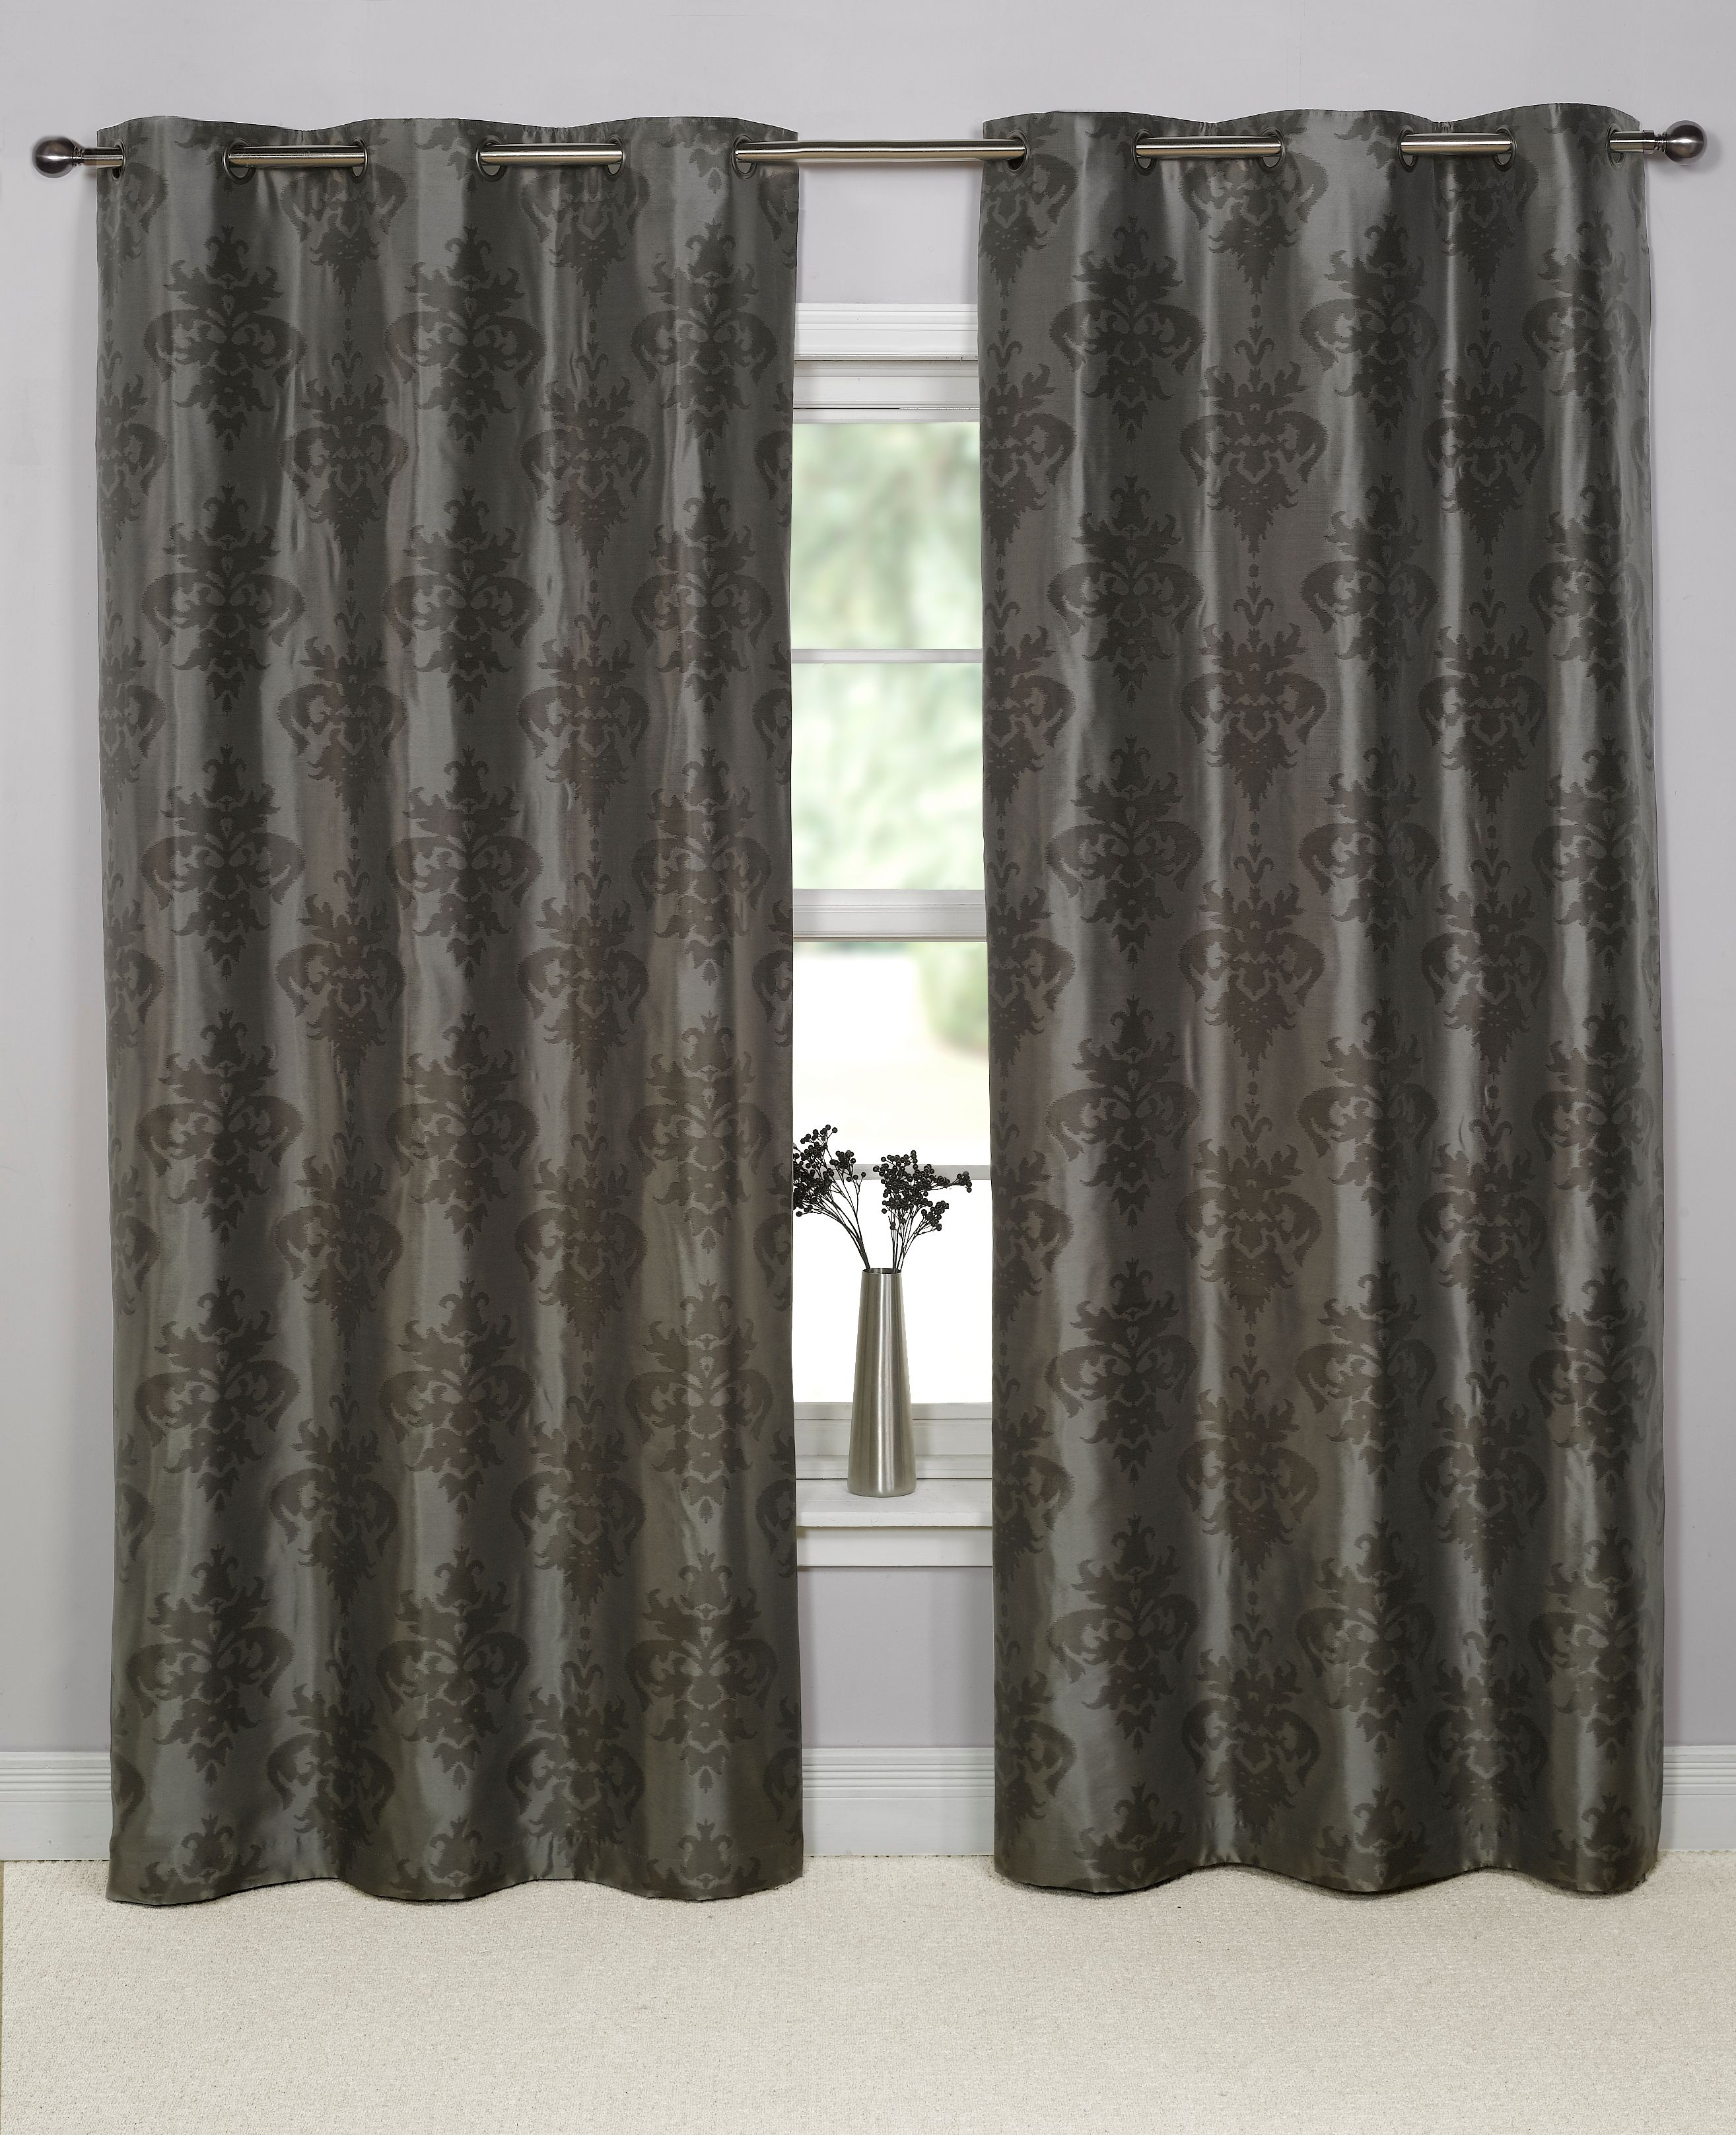 Curtains Ideas damask curtain : damask curtains and blinds